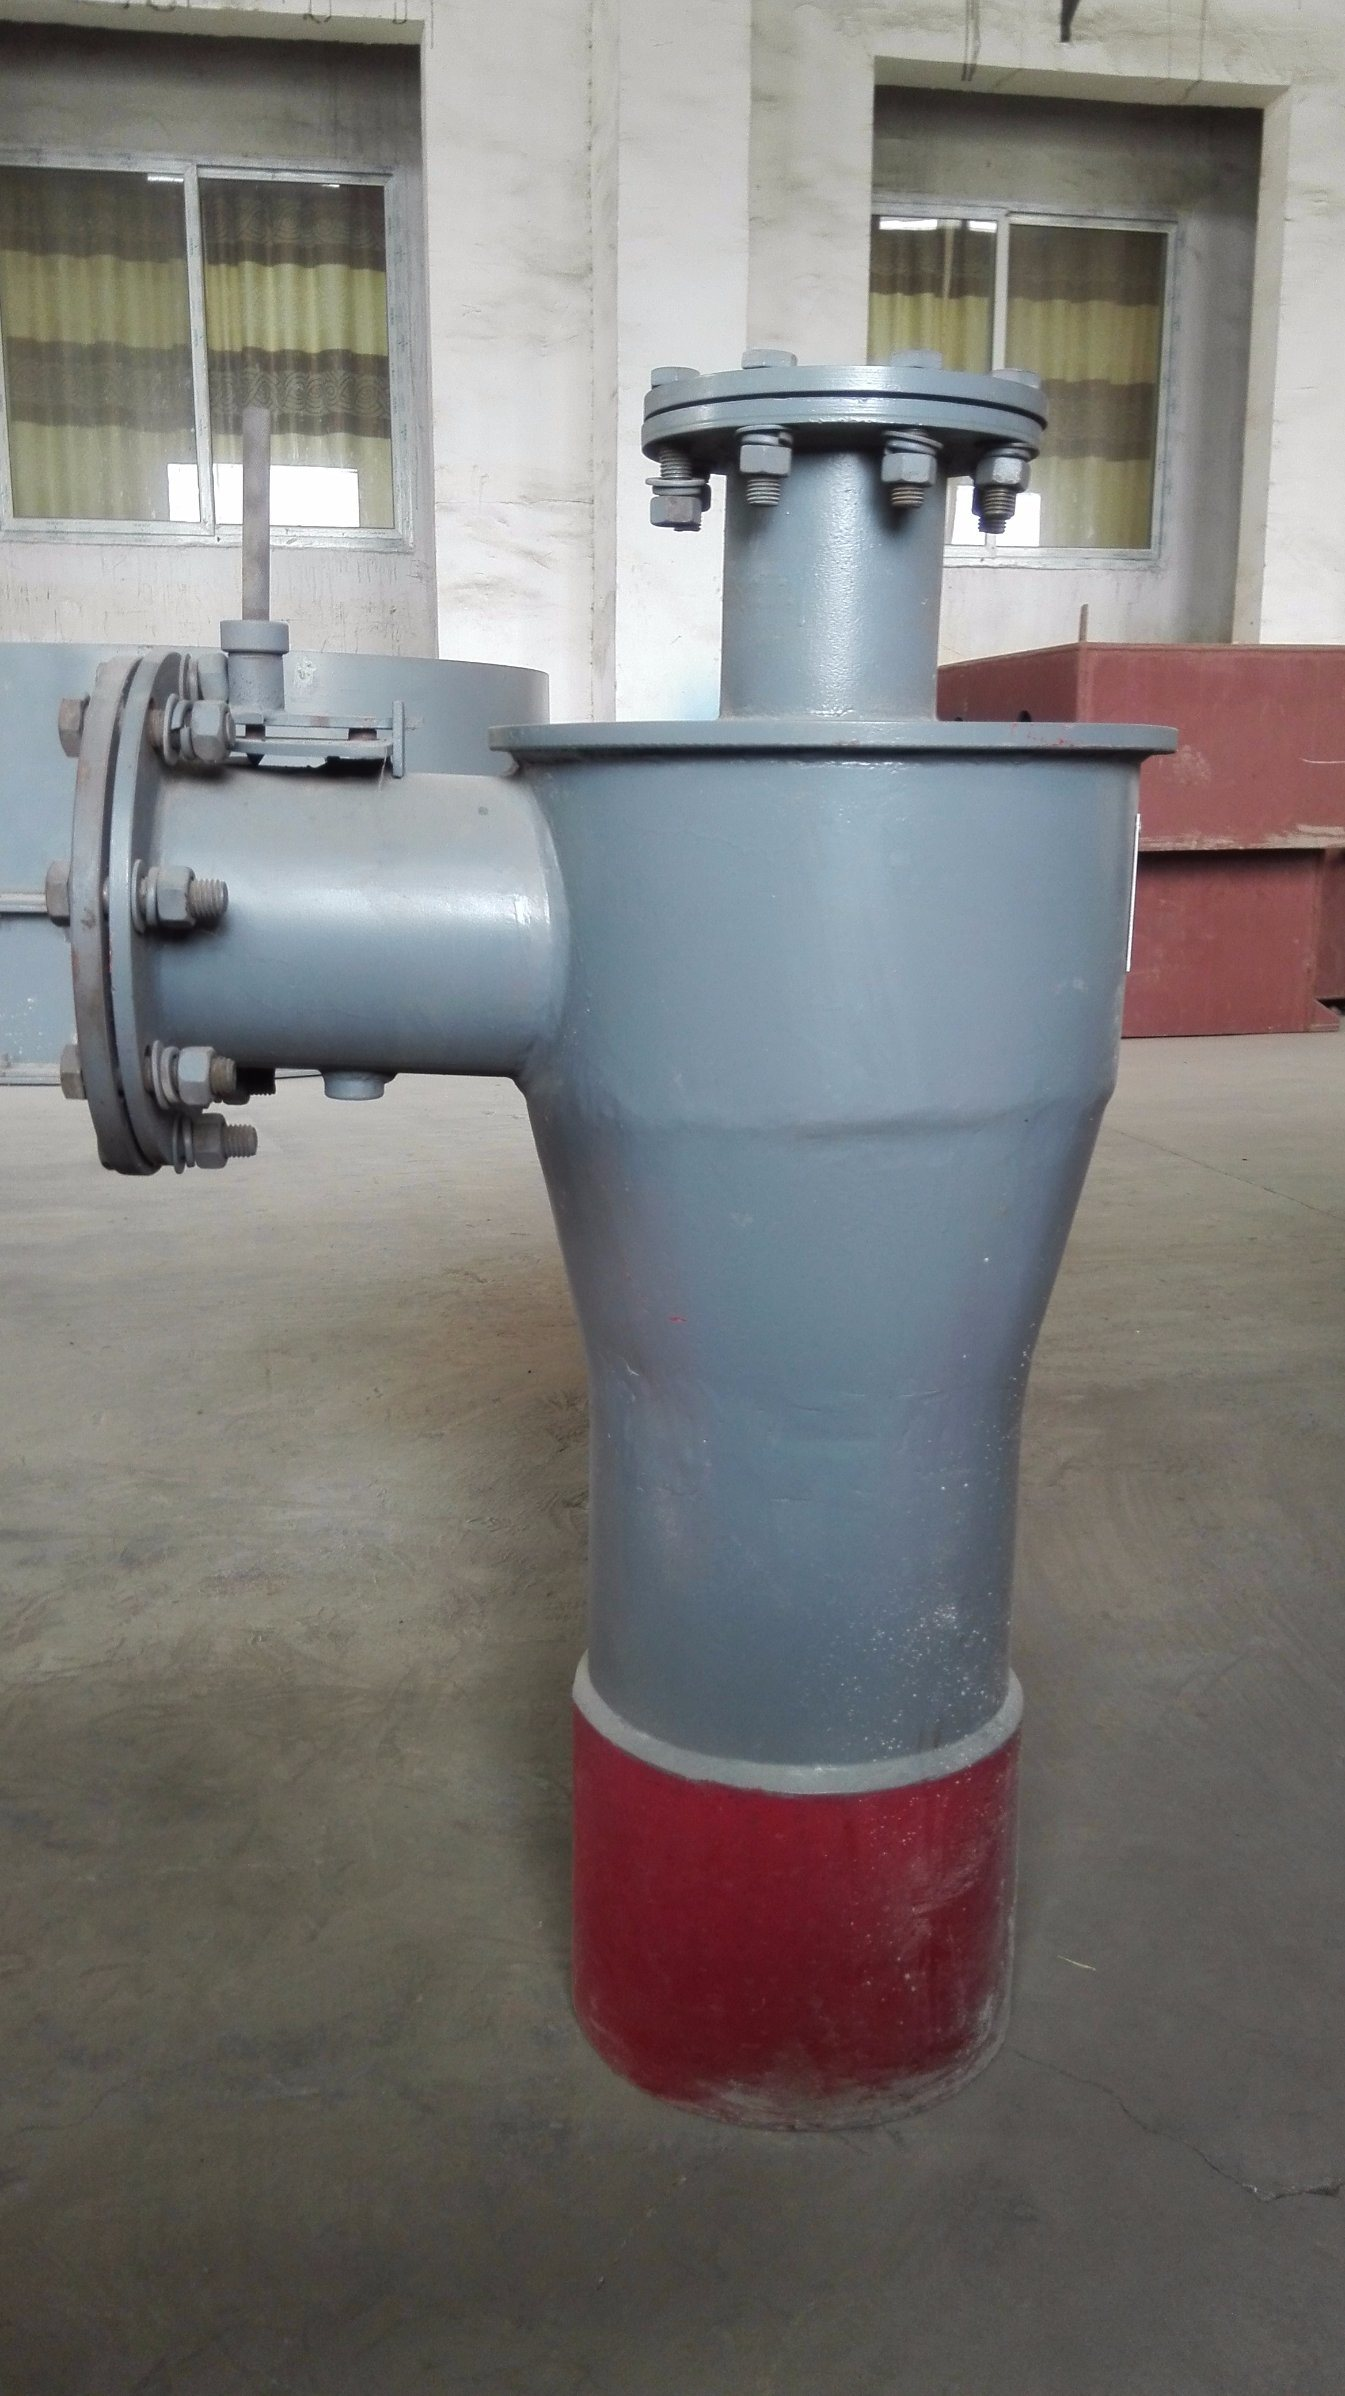 Energy Saving Pulverized Coal Burner for Dryer Heating Resource